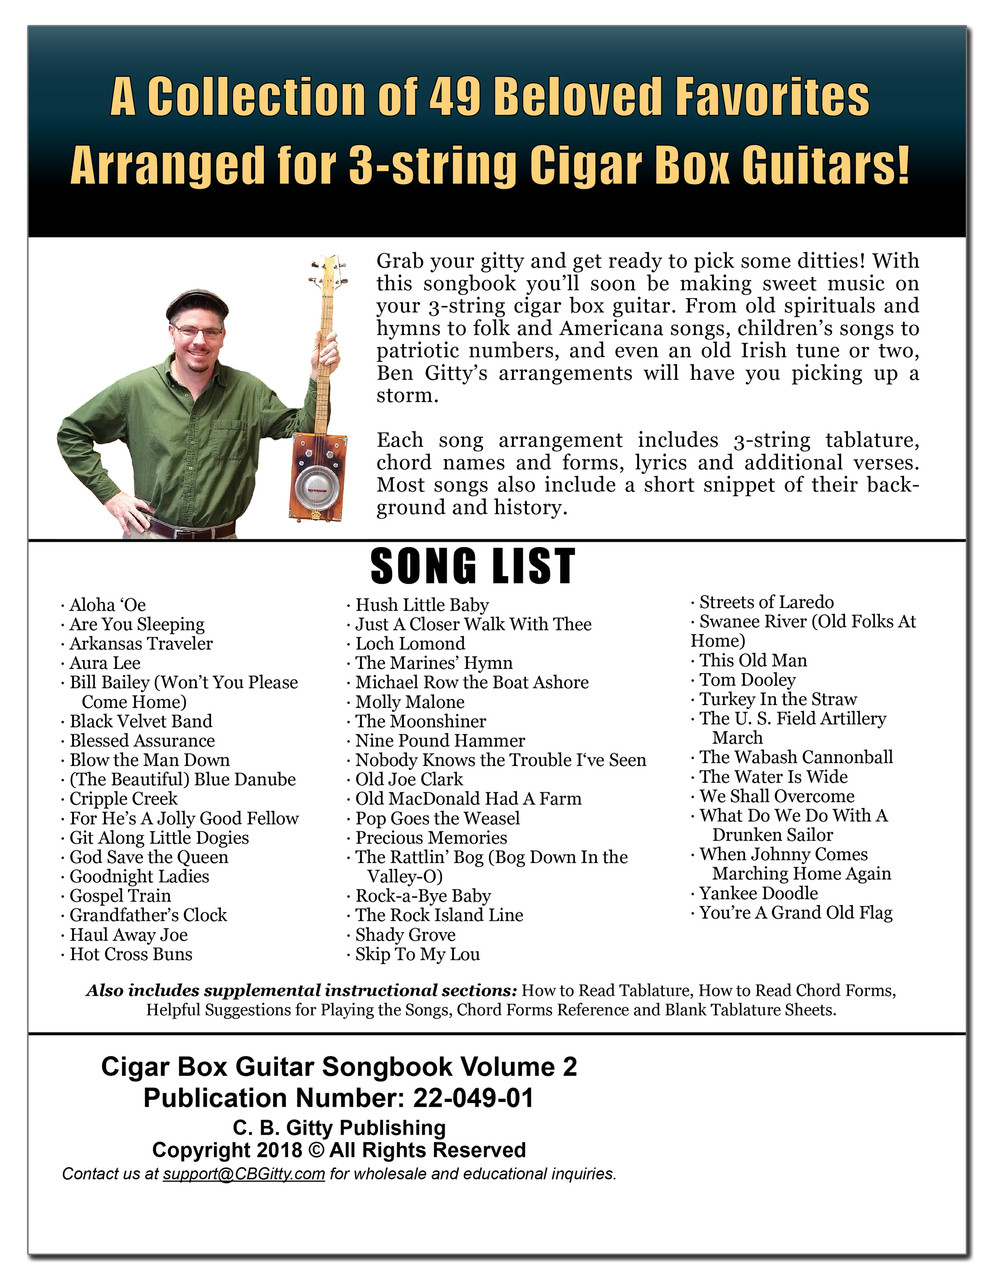 Cigar Box Guitar Songbook - Volume 2: 49 More Songs Arranged for 3-string  Cigar Box Guitars